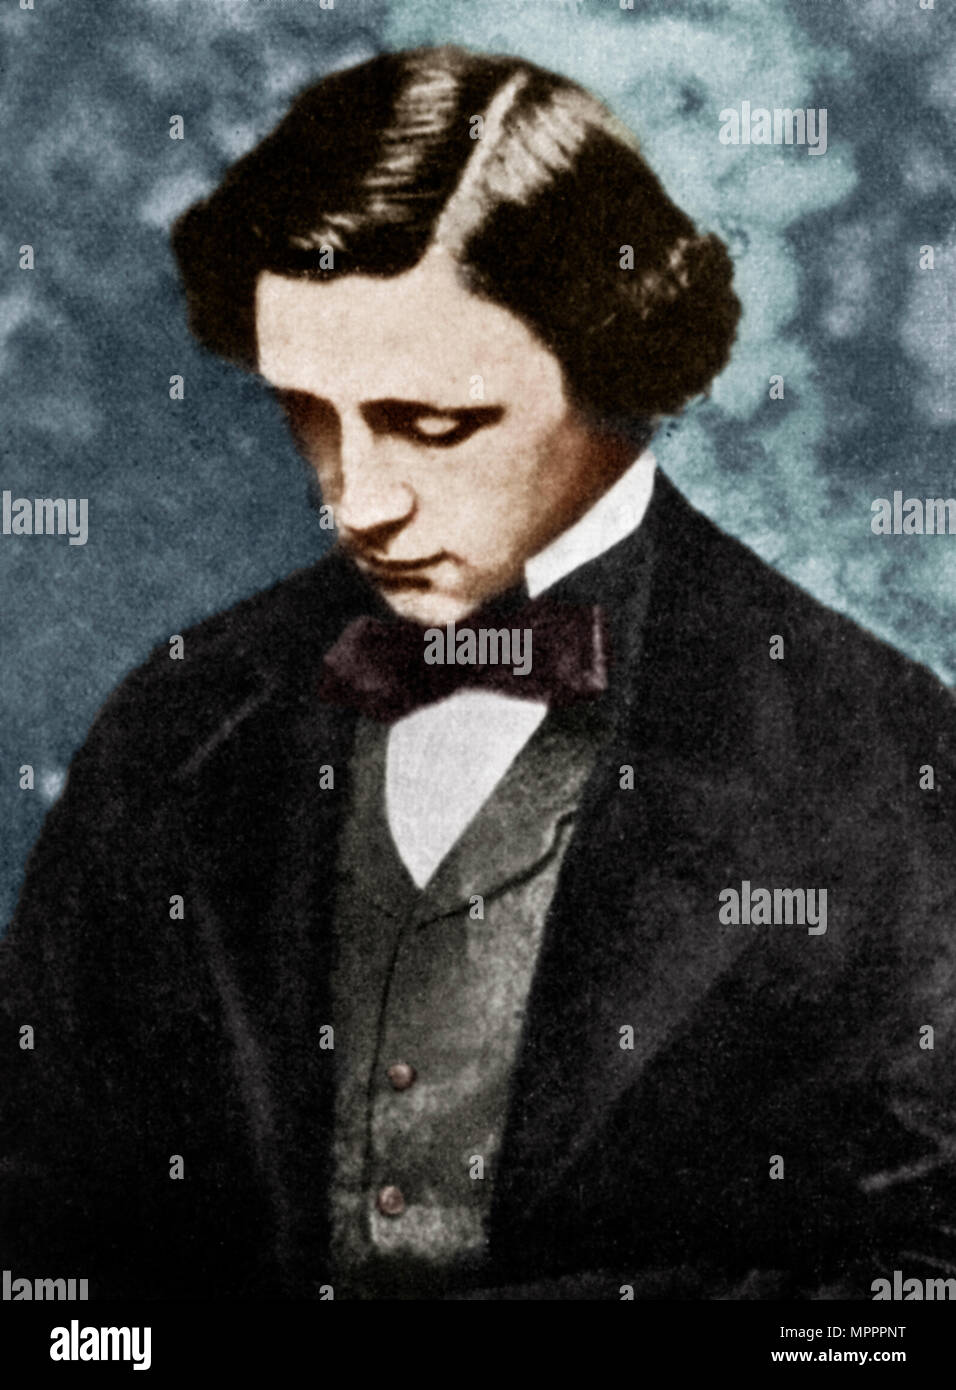 Lewis Carroll, English author, 19th century (1951).  Artist: Unknown. - Stock Image